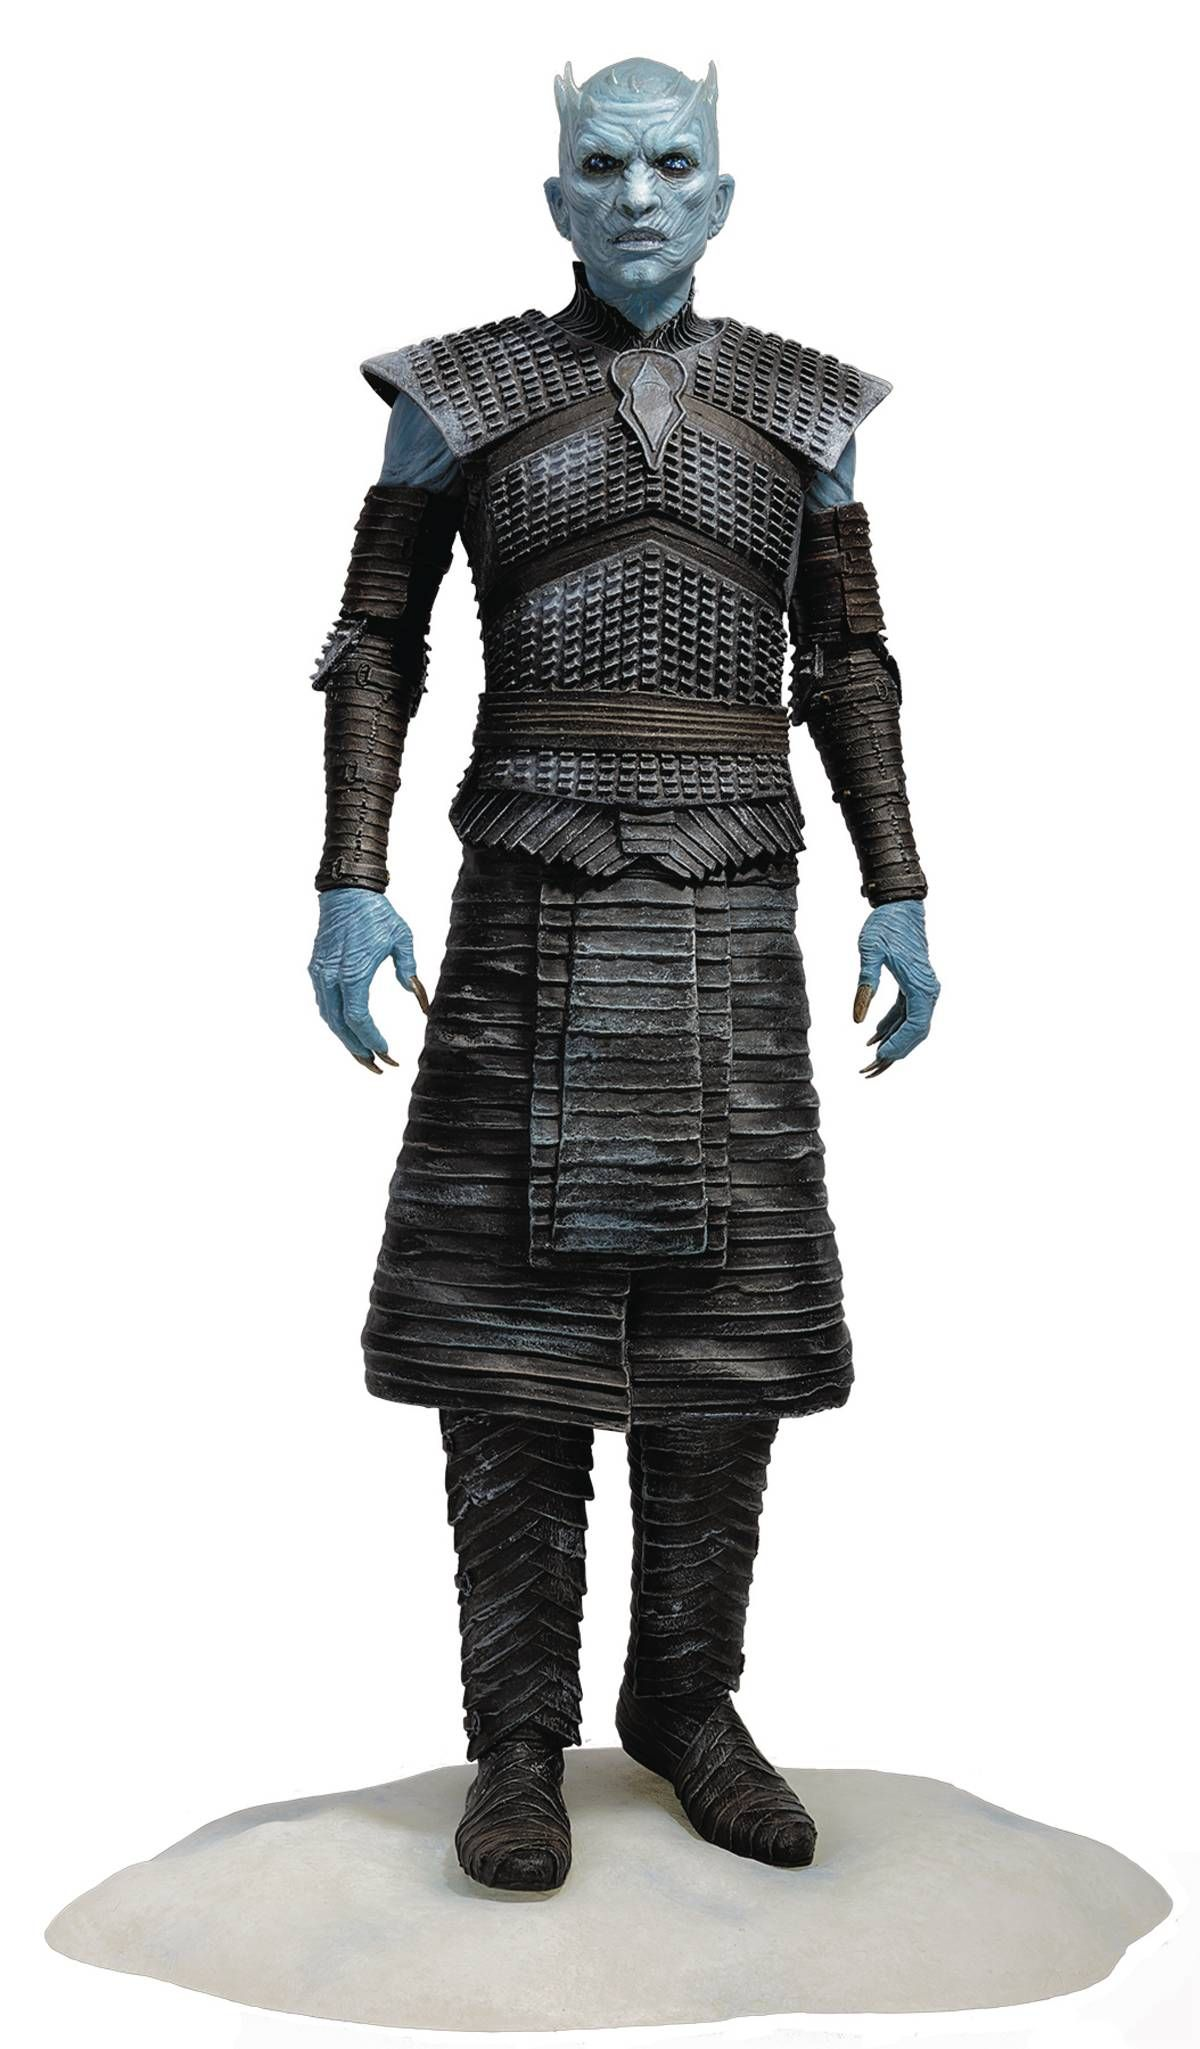 Back To Search Resultshome Gentle A Song Of Ice And Fire Game Of Thrones Season 8 White Walkers Night King Mask Cosplay Full Head Mask Helmet Latex Prop Halloween